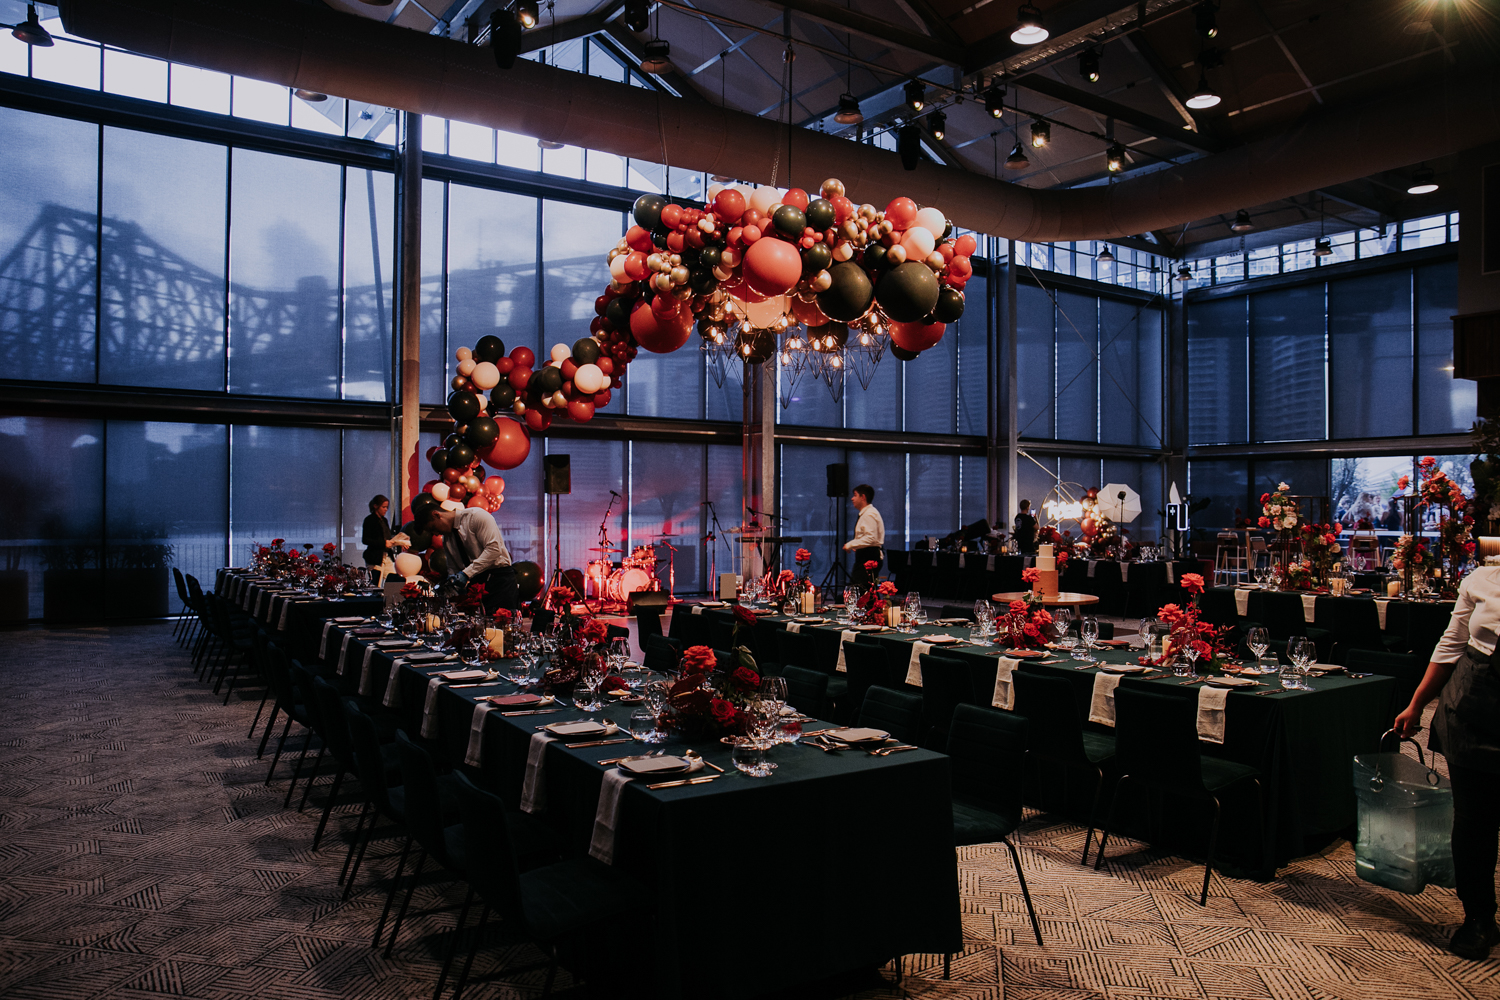 white+white weddings and events the wedding school howard smith wharves balloon backdrop full room howards hall